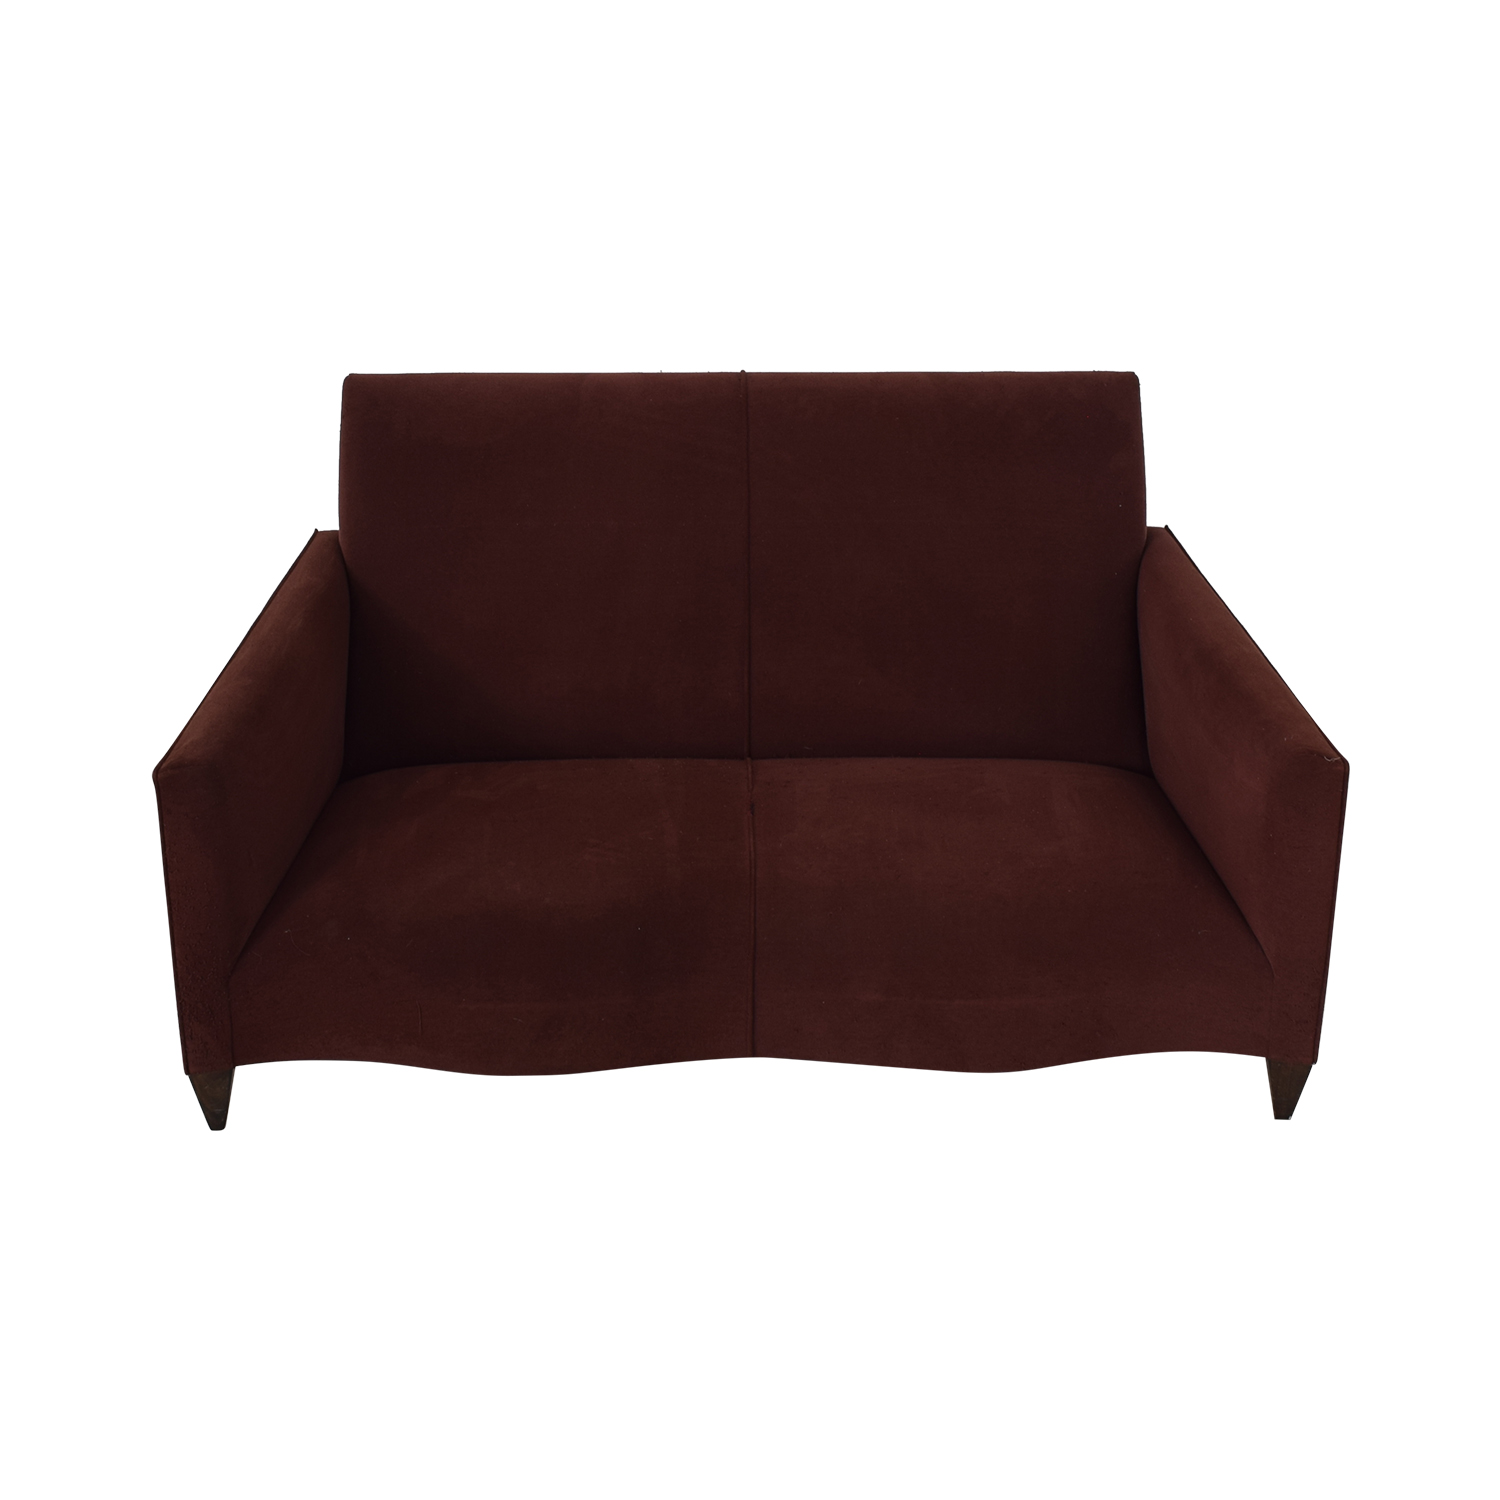 Donghia Donghia Burgundy Loveseat on sale